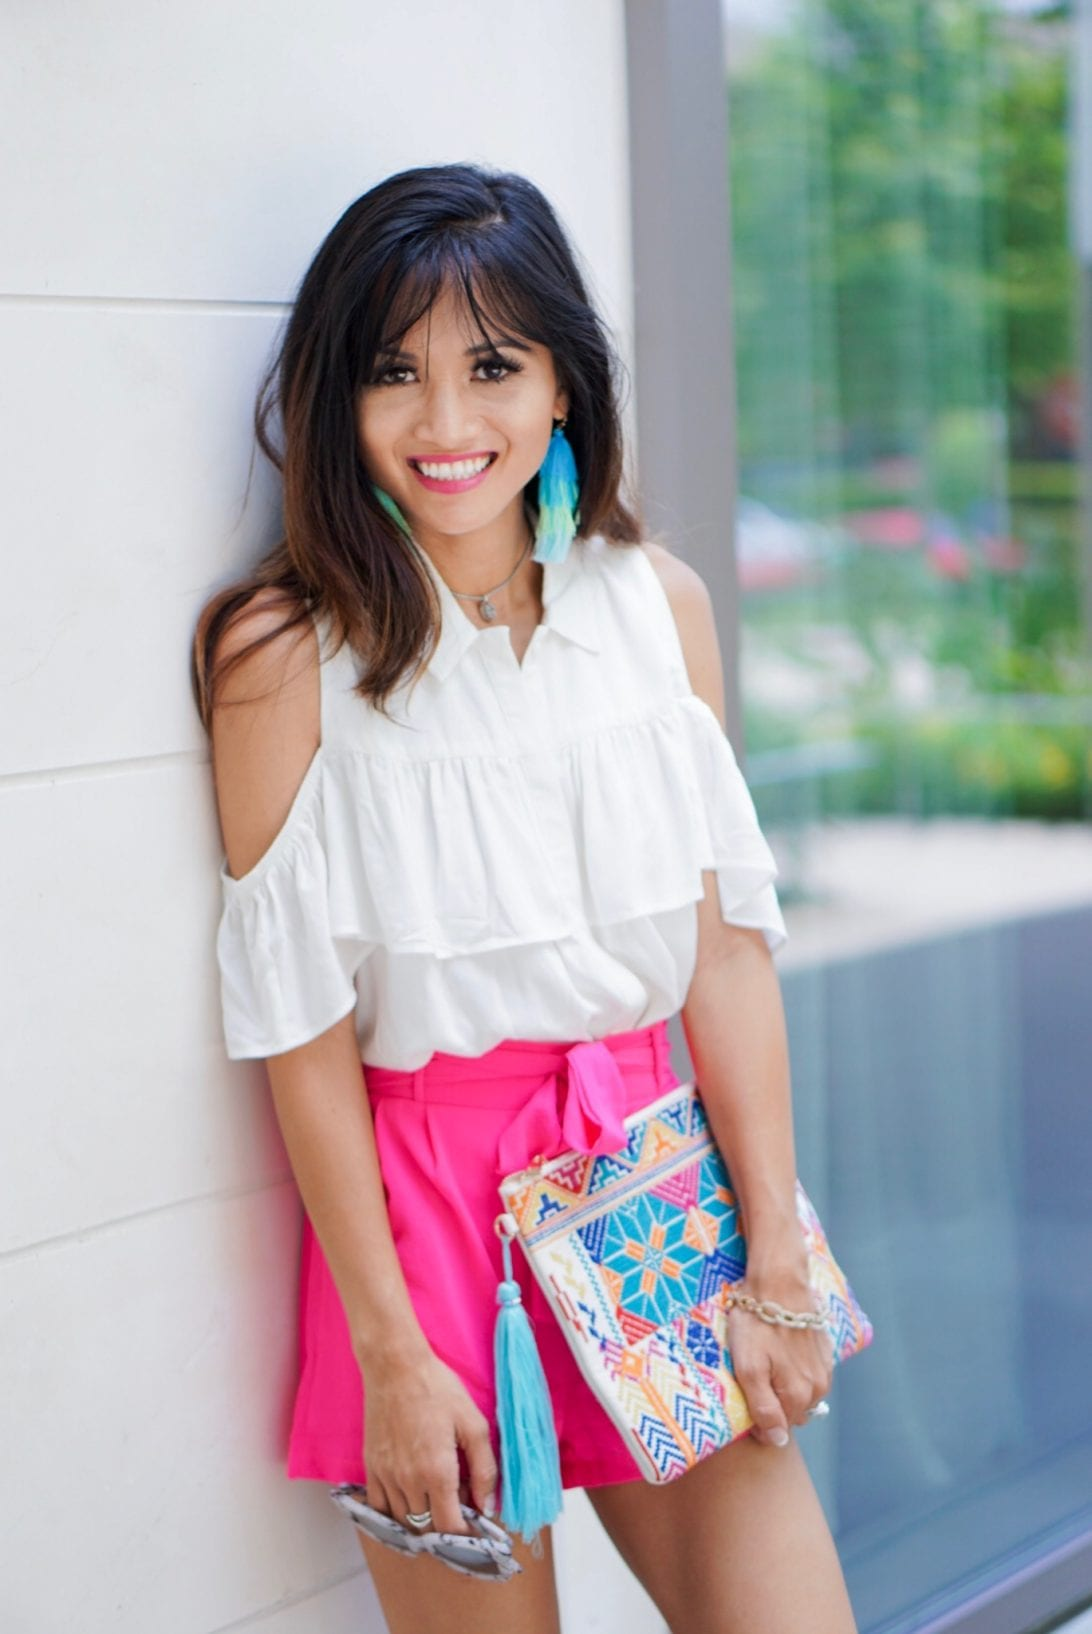 cold shoulder top, ruffle top, ombre earrings, tassel tiered earrings, tassel clutch, embroidered clutch, tie front shorts, summer style, summer look